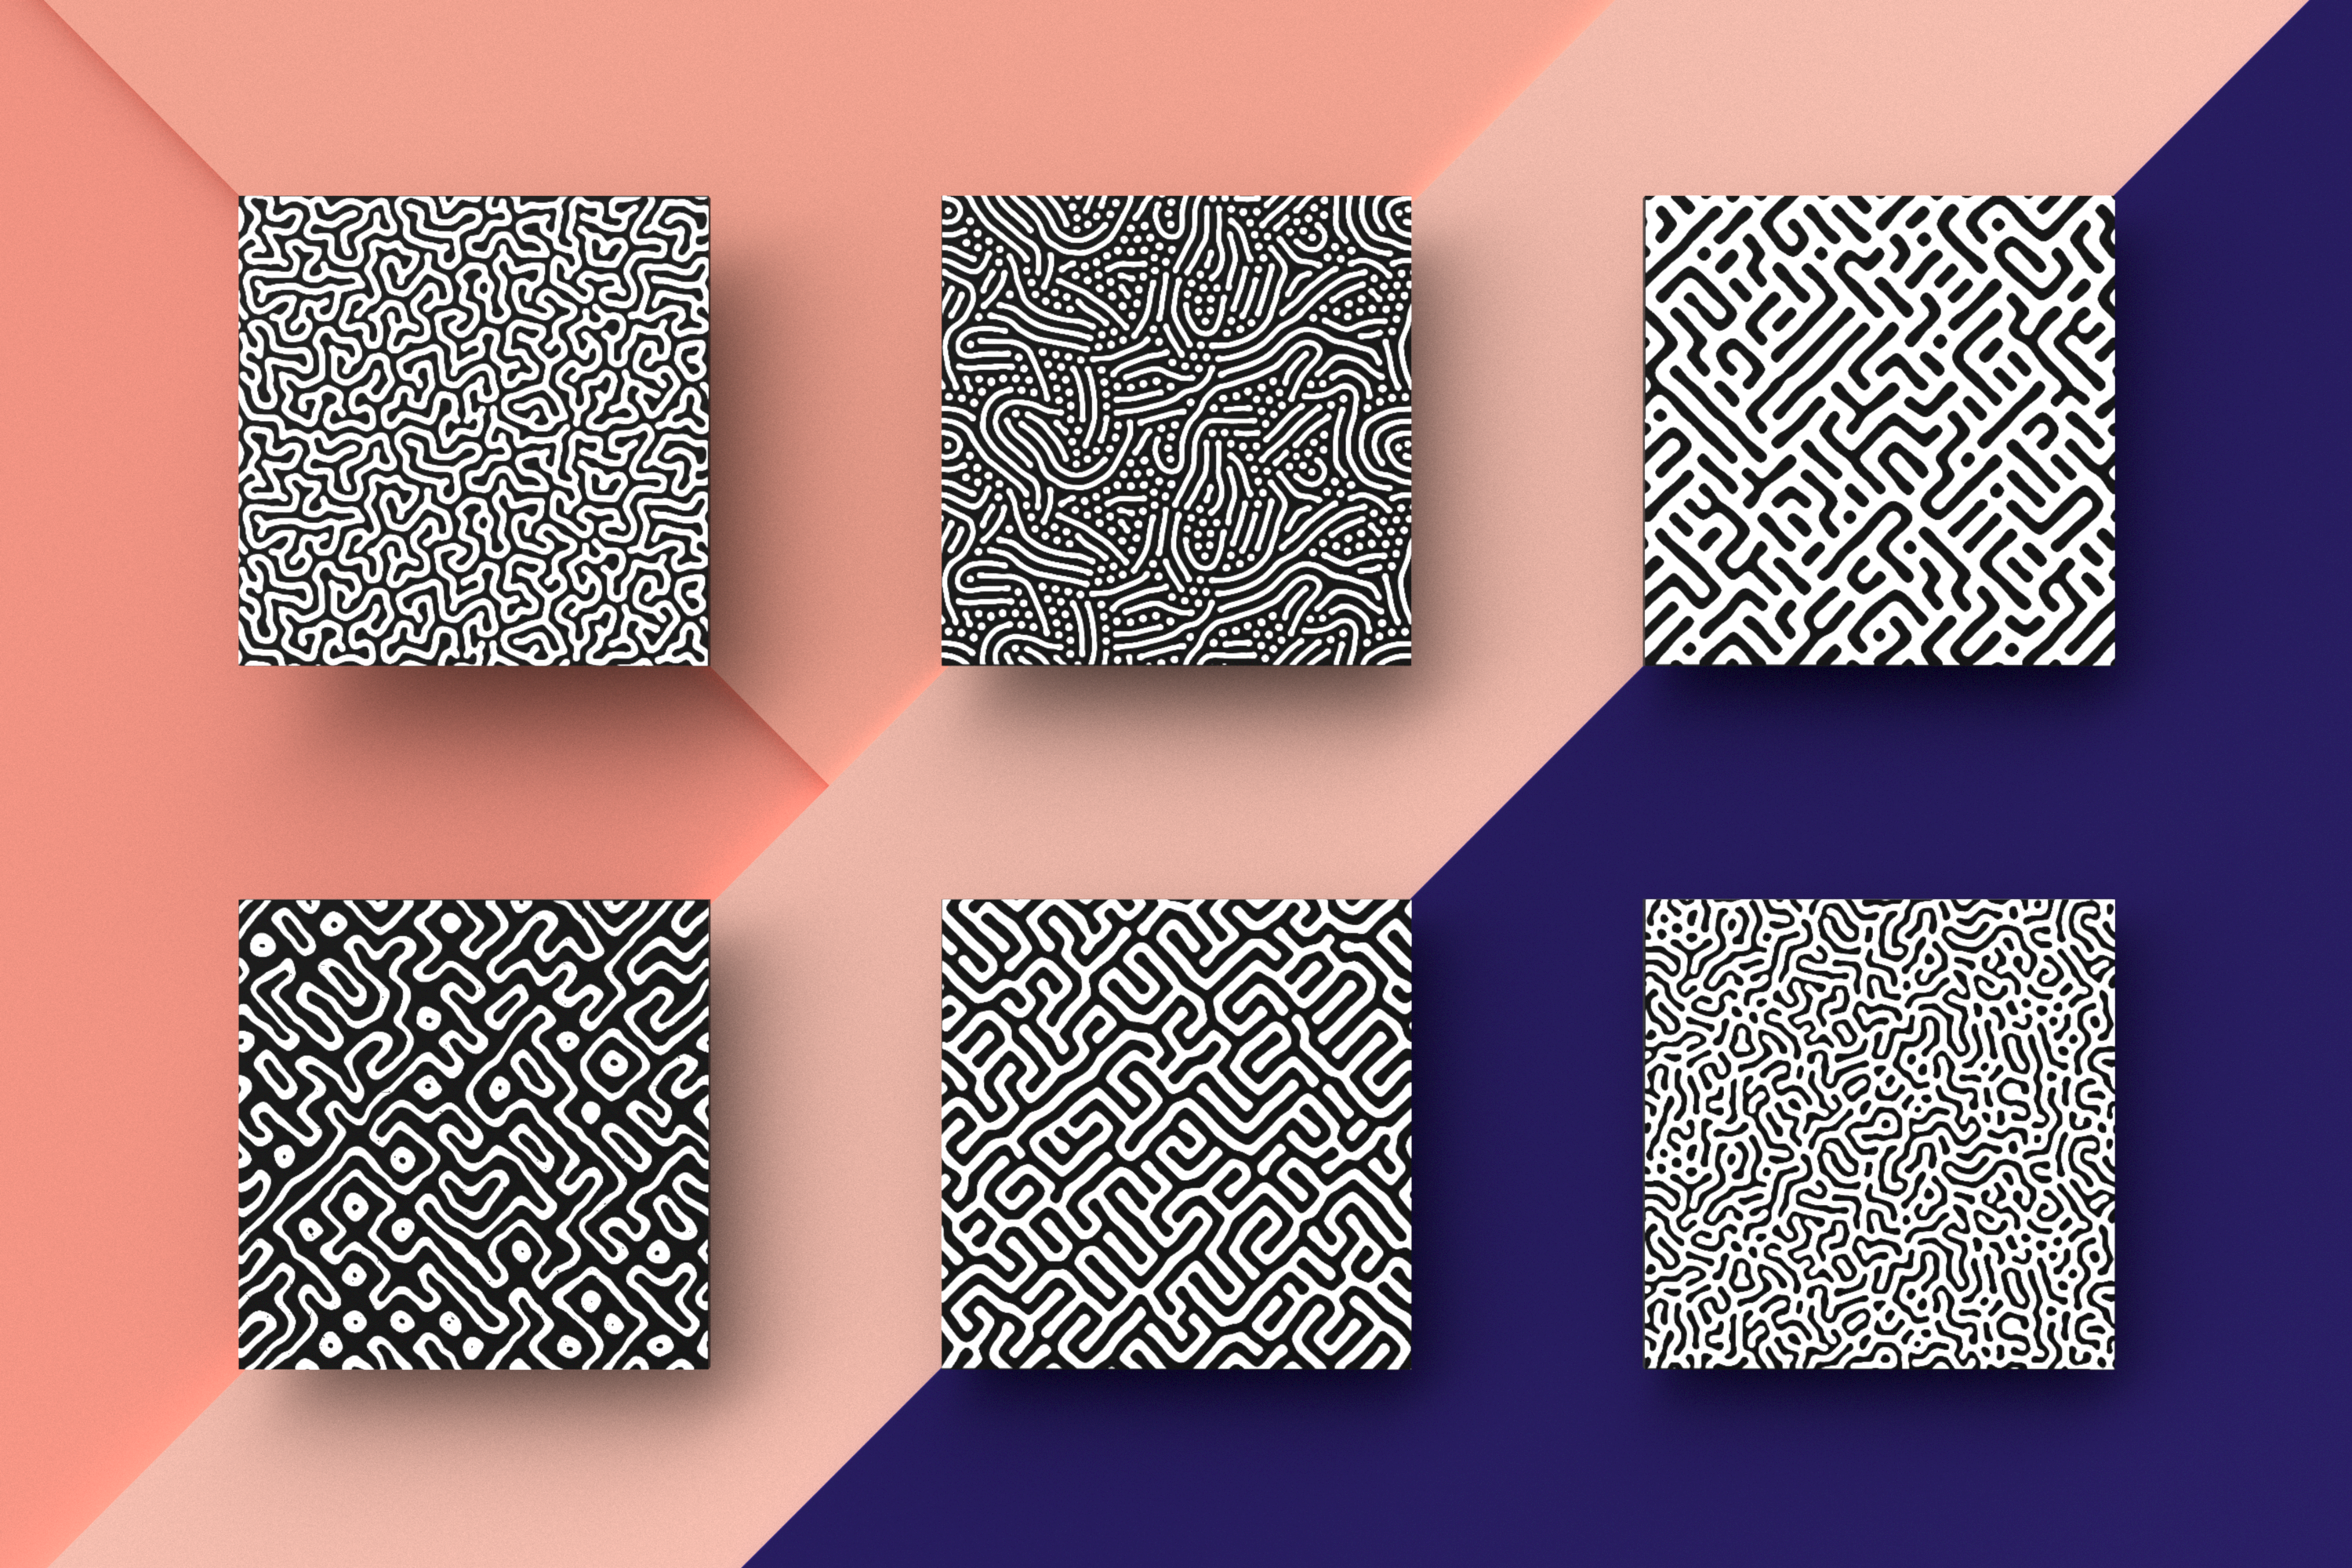 Organic Patterns - 50 trendy seamless textures example image 11